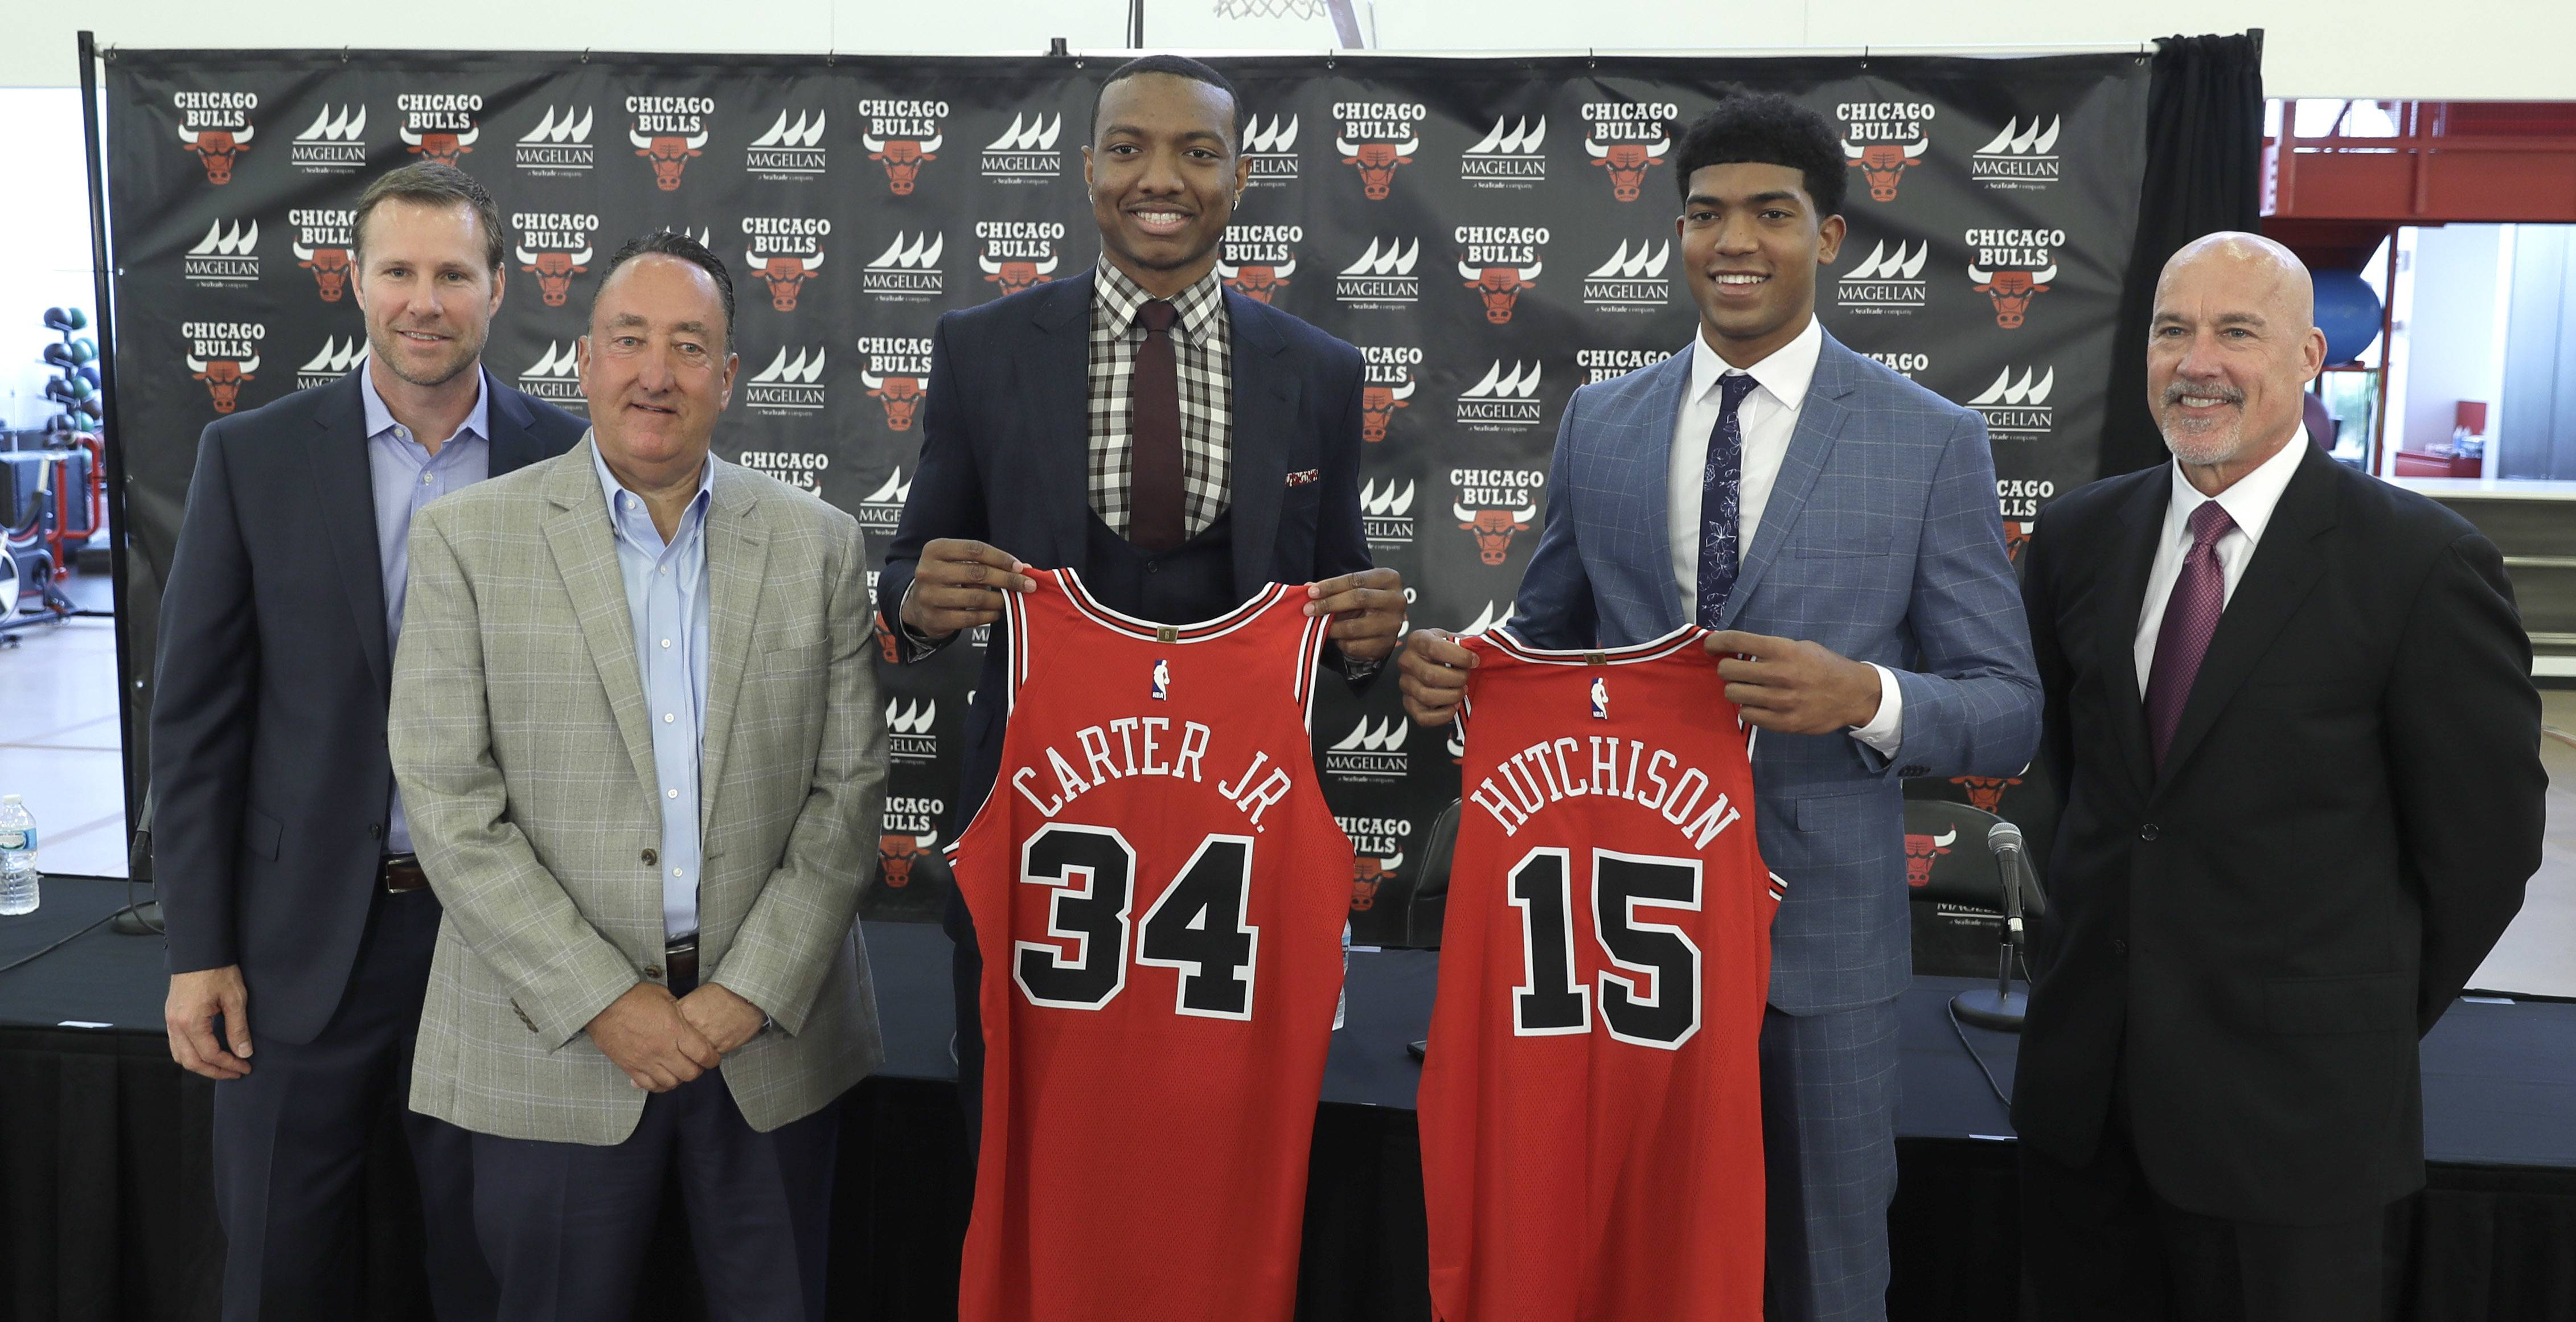 Chicago Bulls draft picks Wendell Carter Jr., (34) and Chandler Hutchison (15) share the stage with team executive from left, head coach Fred Hoiberg, general manager Gar Forman and executive vice president for basketball operations John Paxson.